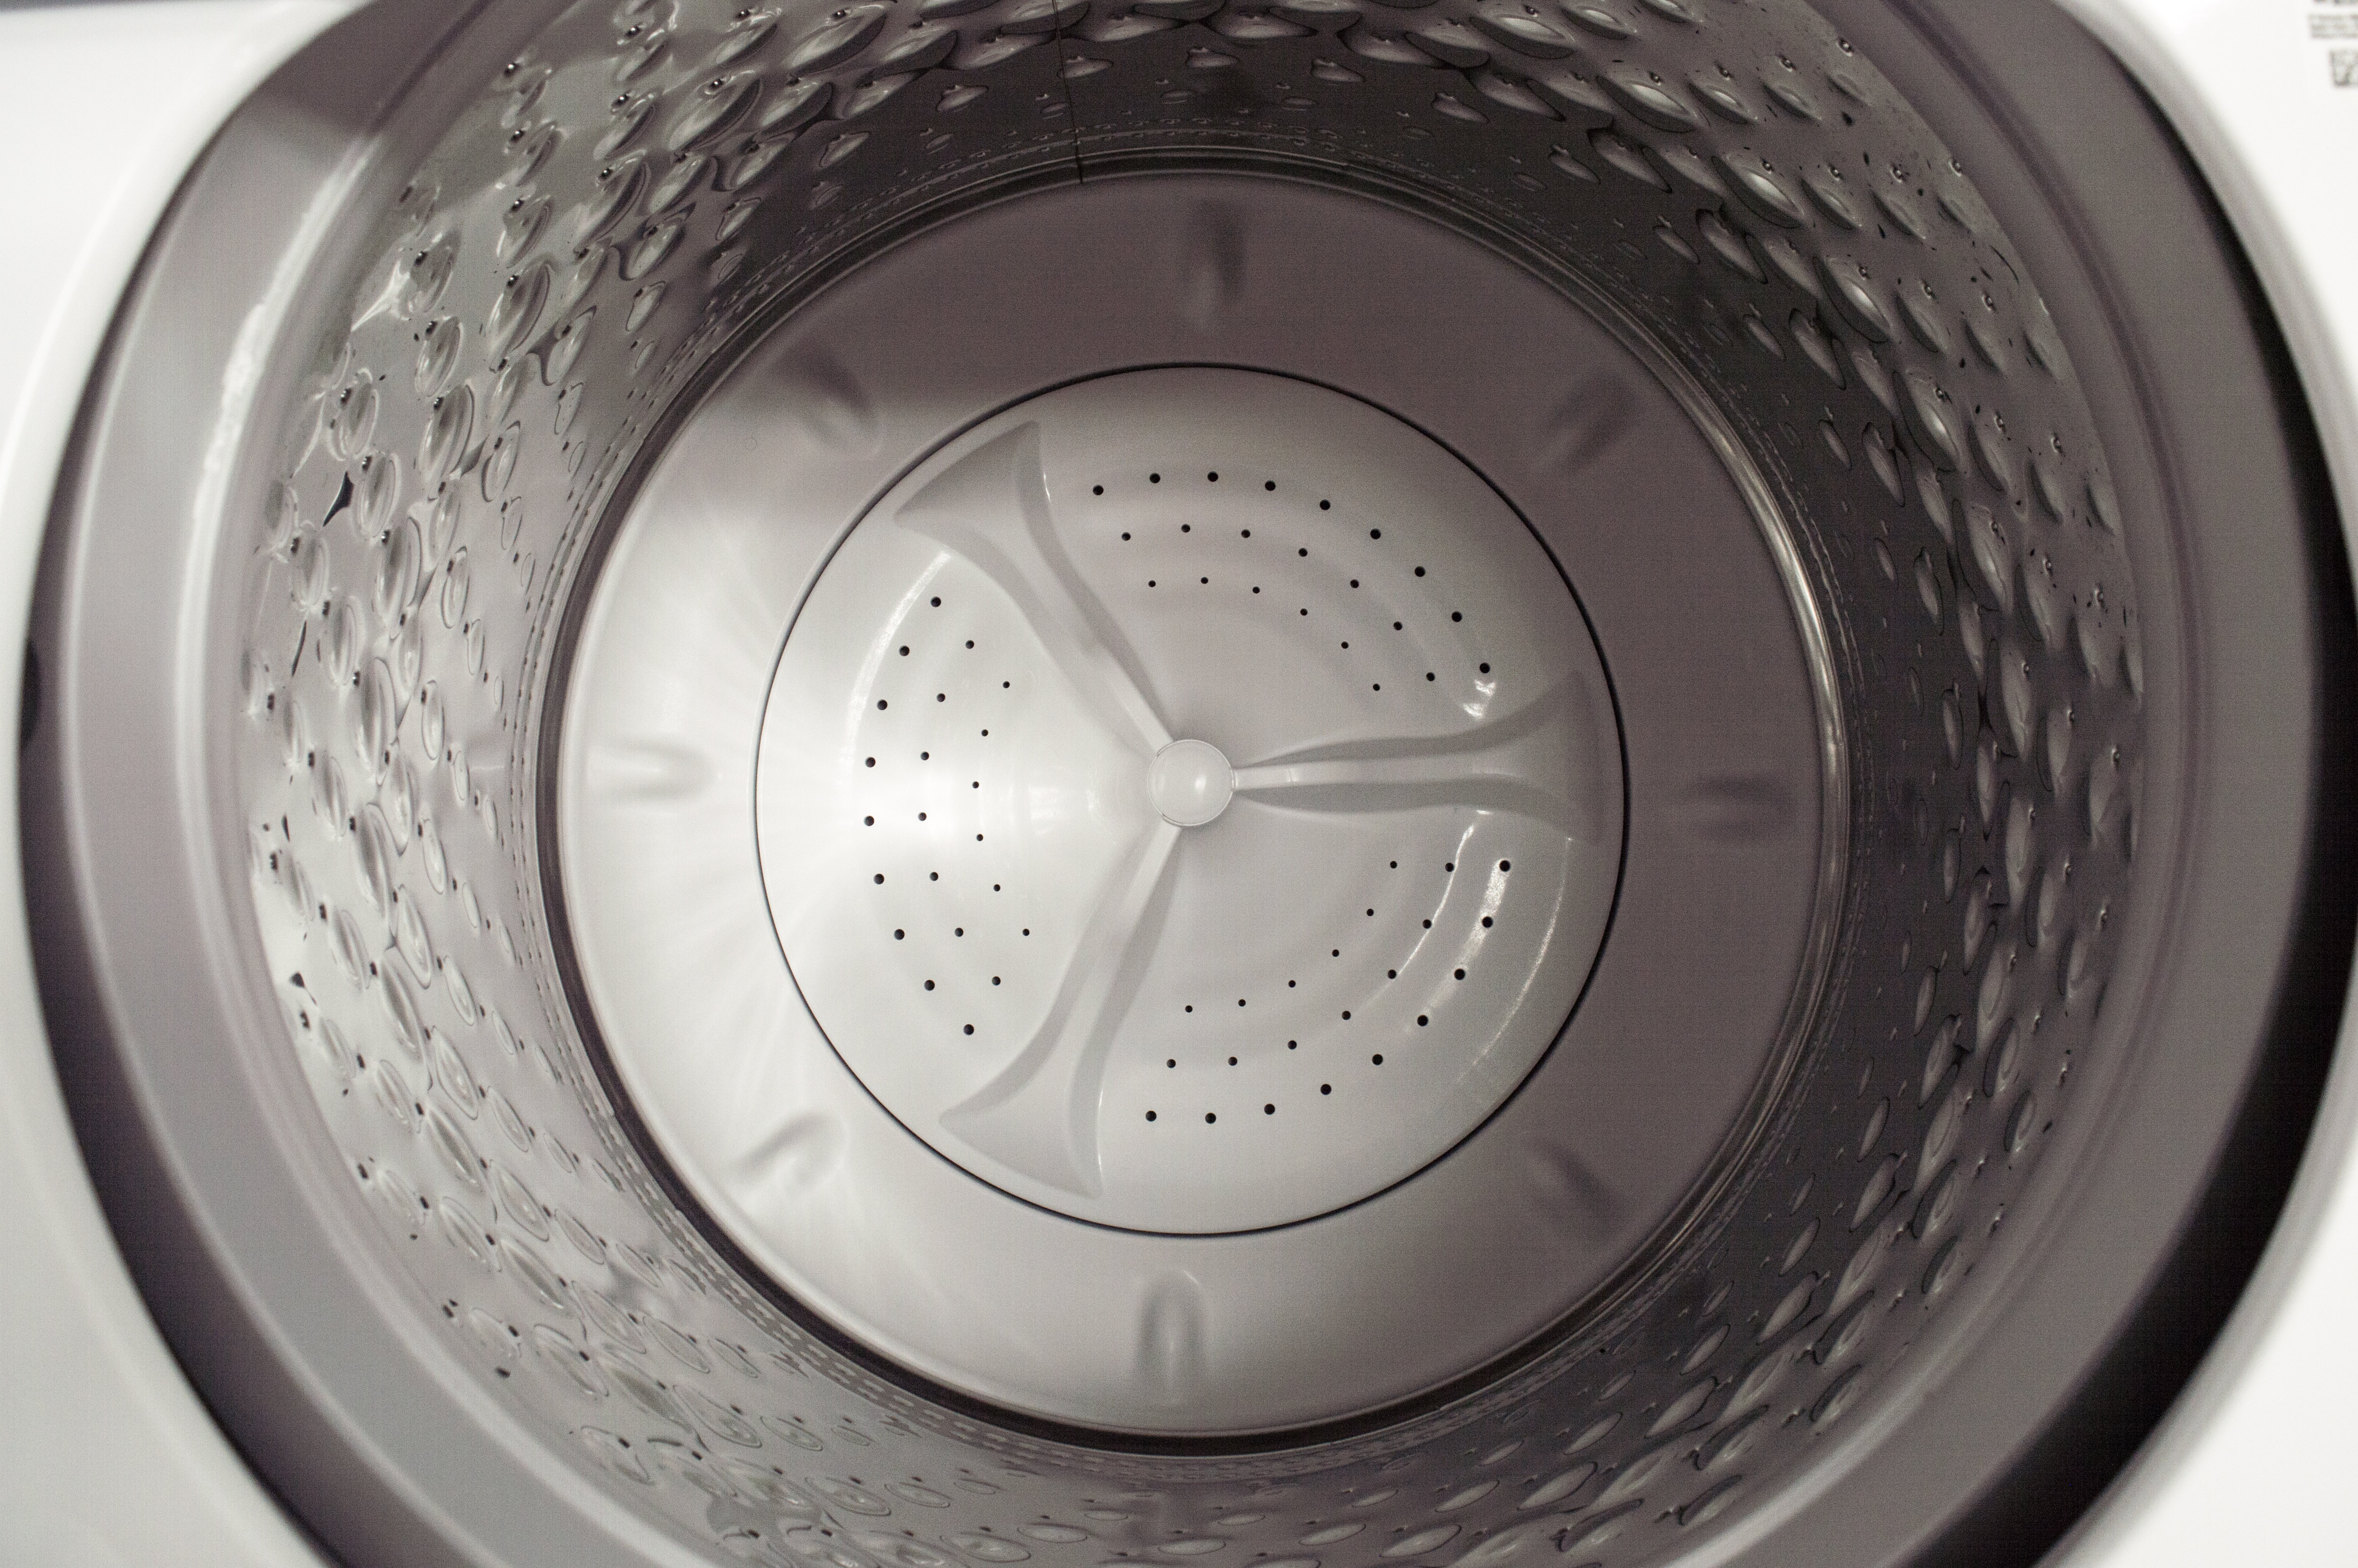 washing machine whirlpool review